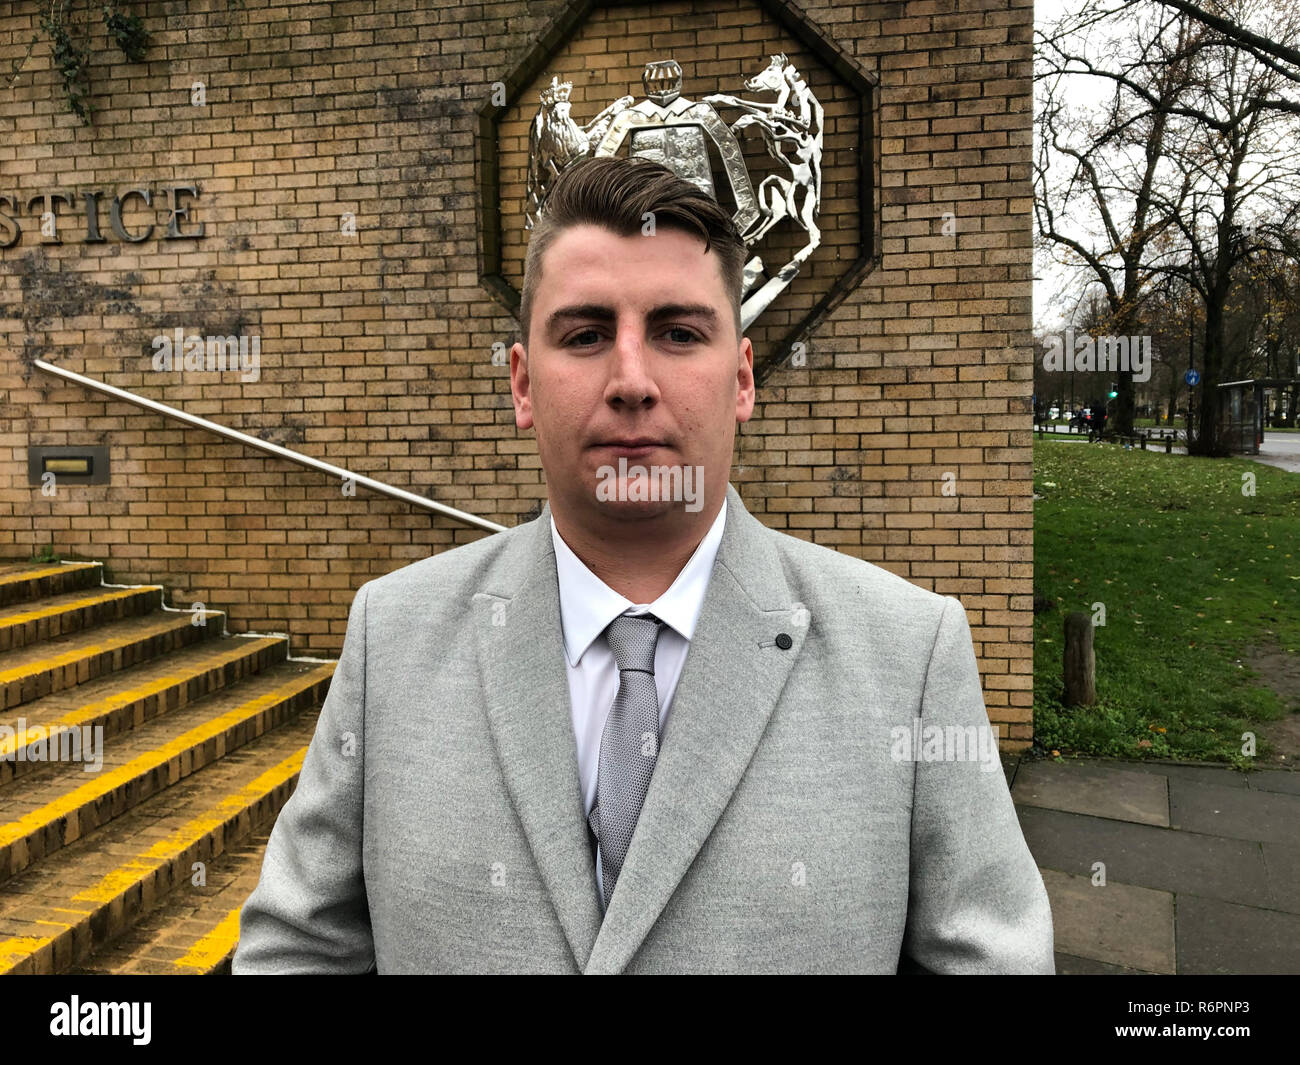 Tom Carey outside Southampton Crown Court where Gentjan Lalaj was jailed for three years and given a six-and-a-half year driving ban after he was found guilty of causing serious injury by dangerous driving. - Stock Image